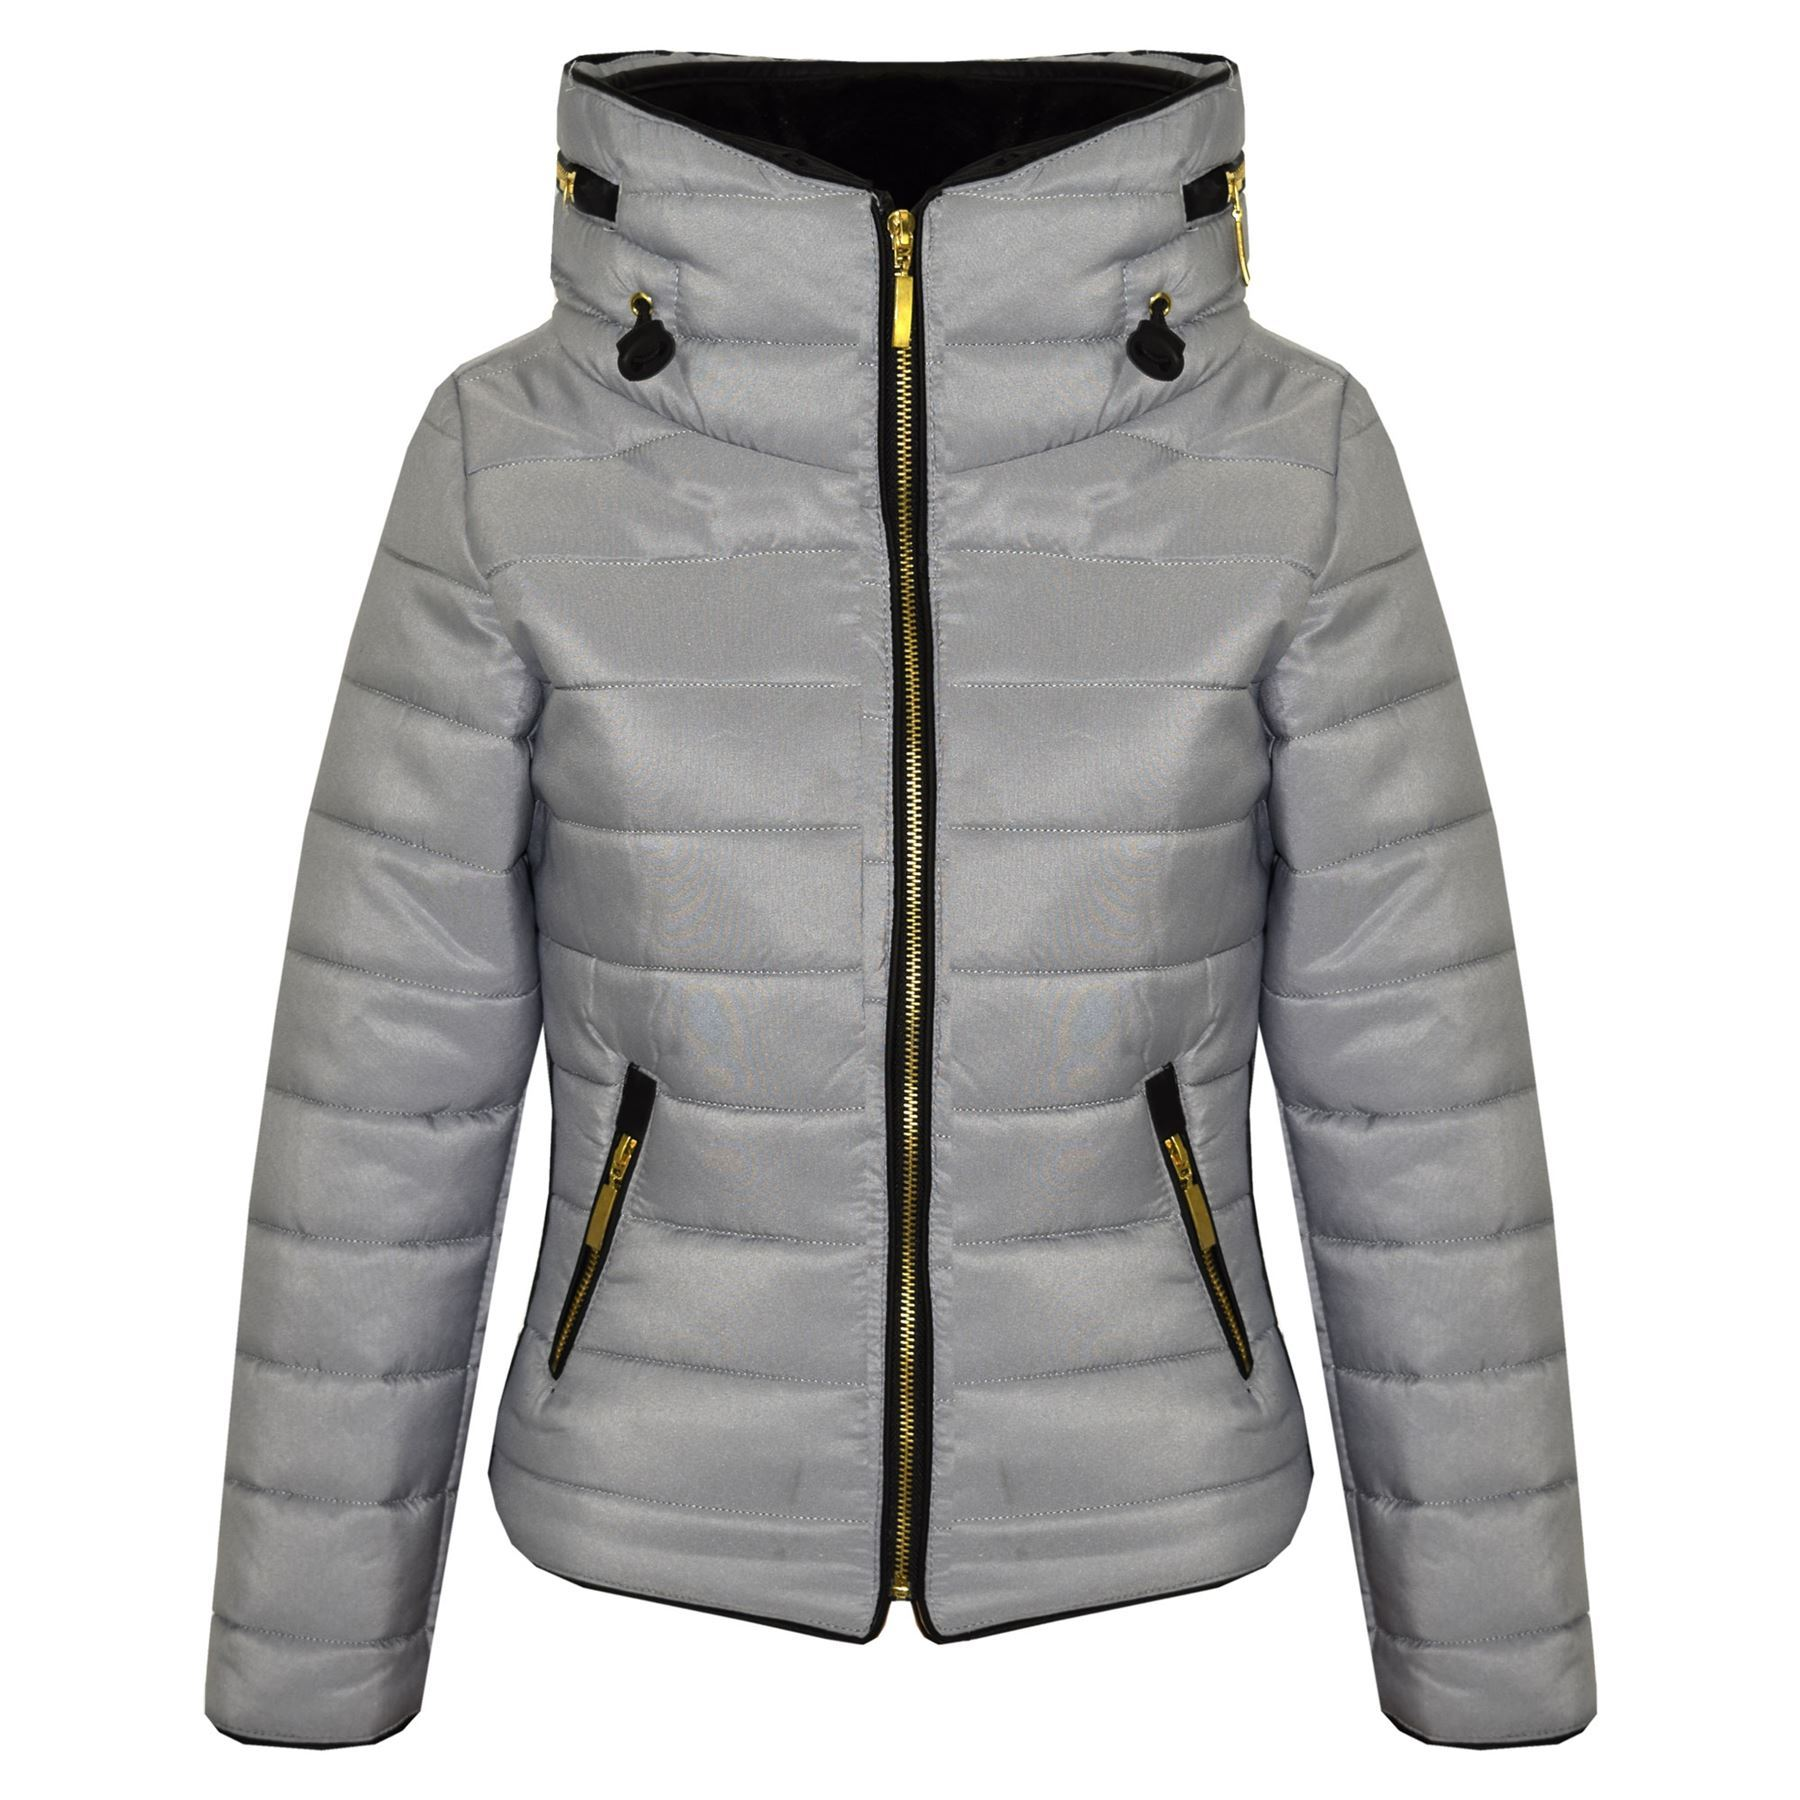 05841eb4de99 Girls Jacket Kids Padded Puffer Bubble Faux Fur Collar Quilted Warm ...